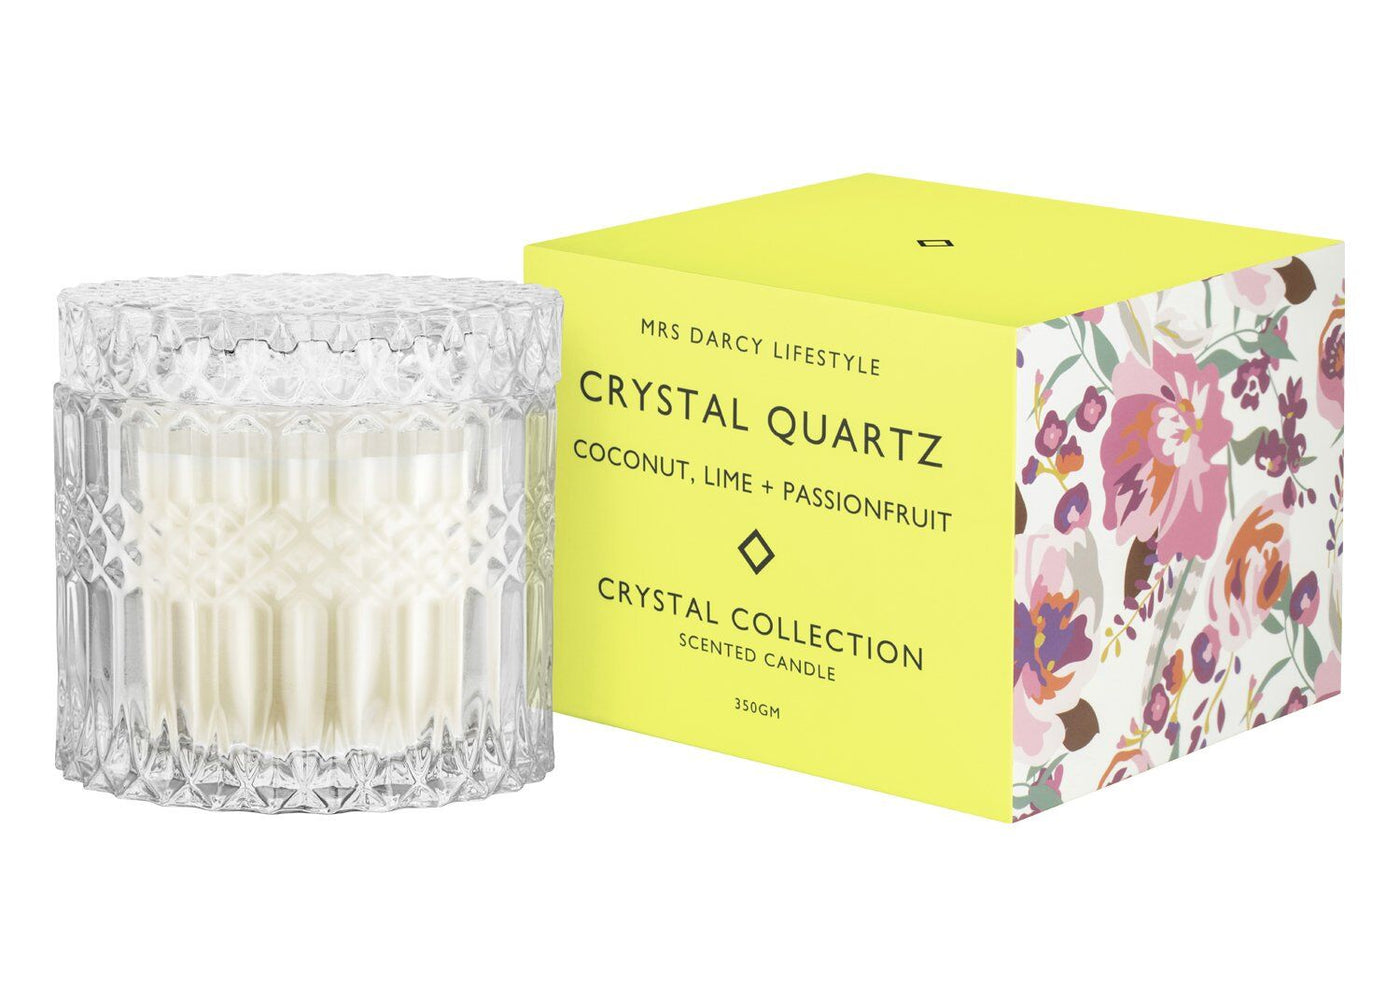 Crystal Quartz - Coconut, Lime + Passionfruit